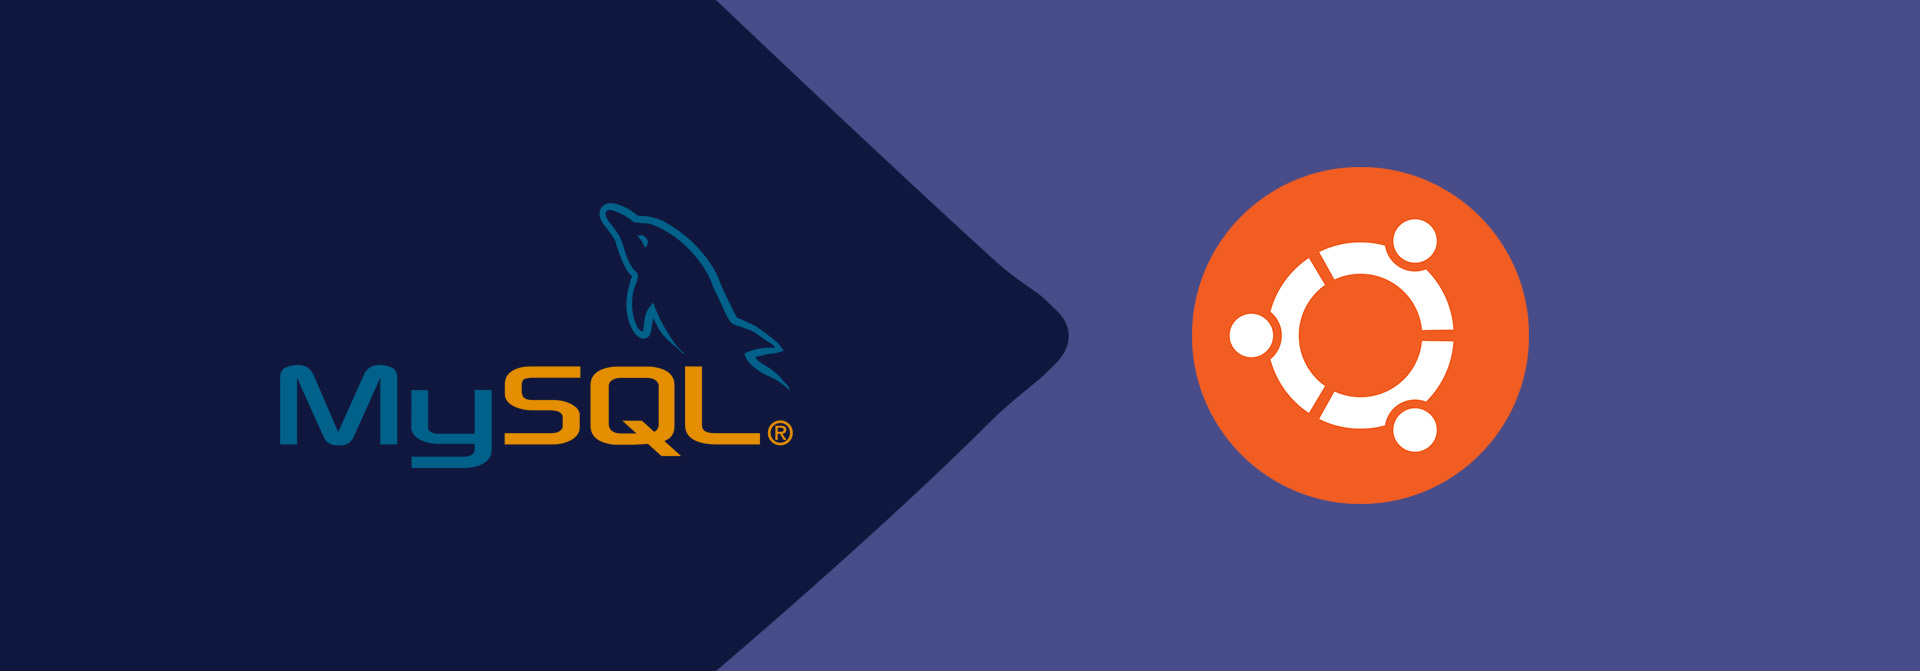 How To Install MySQL 8 on Ubuntu 20.04 LTS